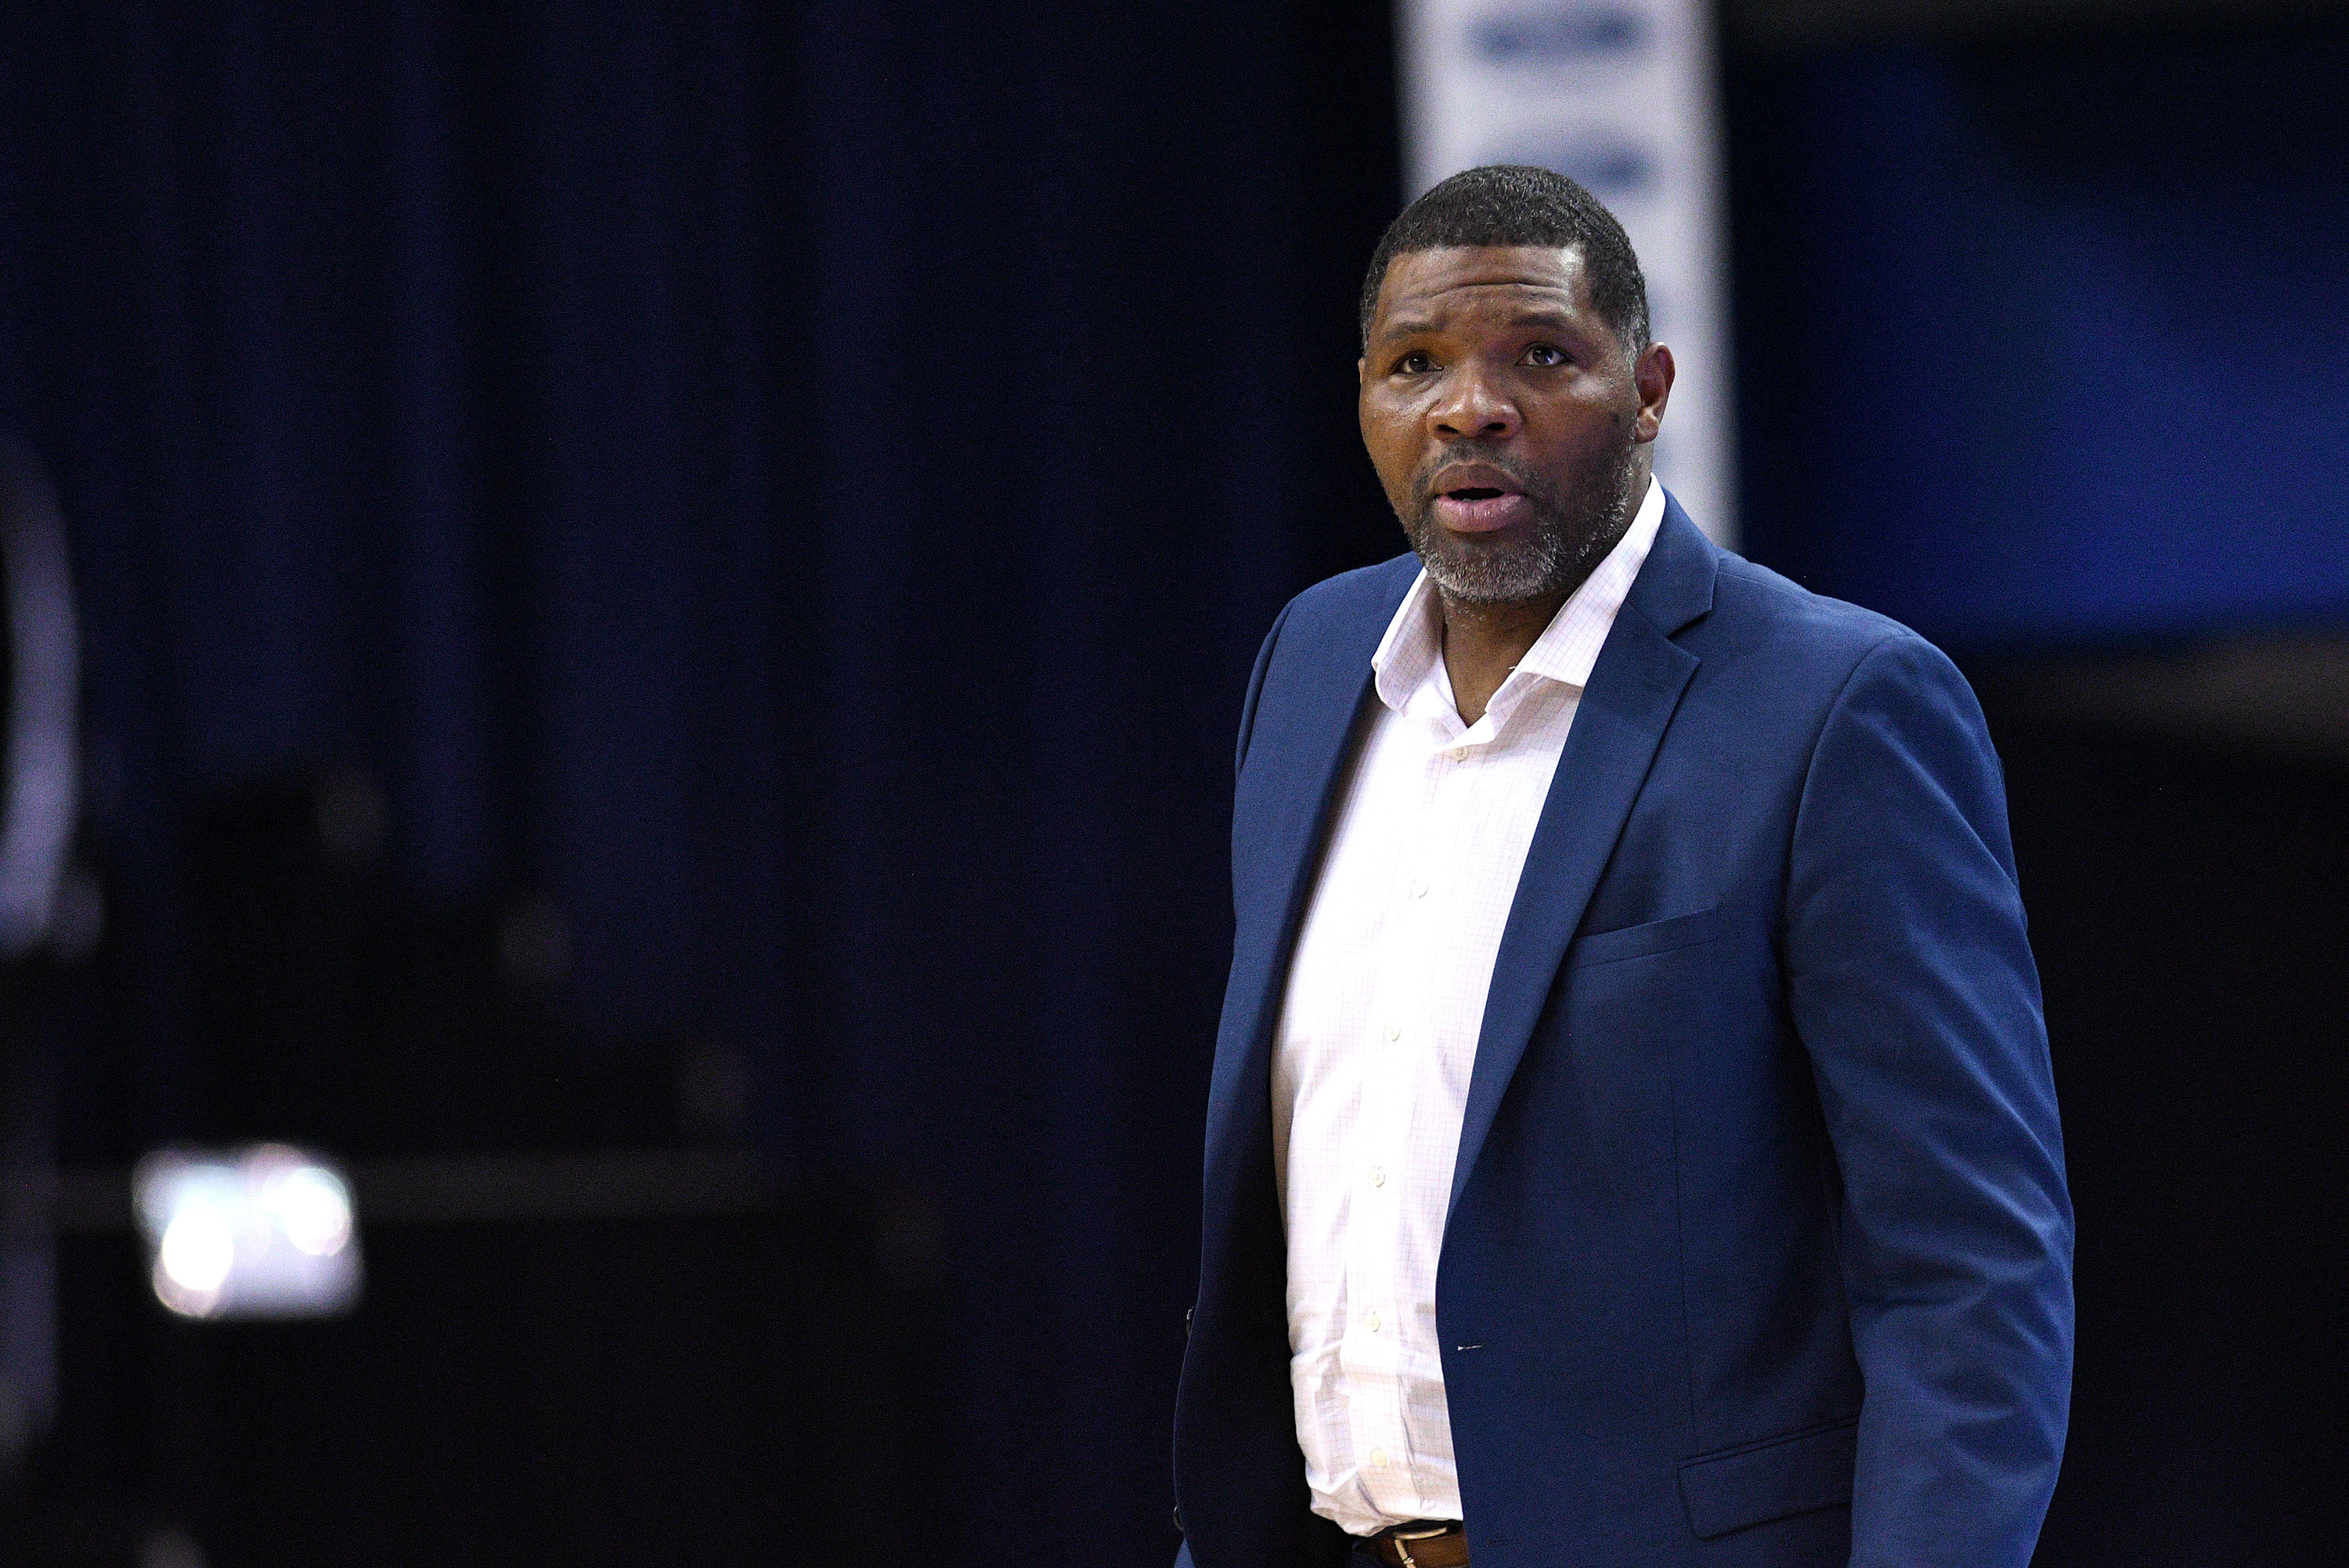 A former student sues the University of Evansville over sexual assault allegations against former basketball coach